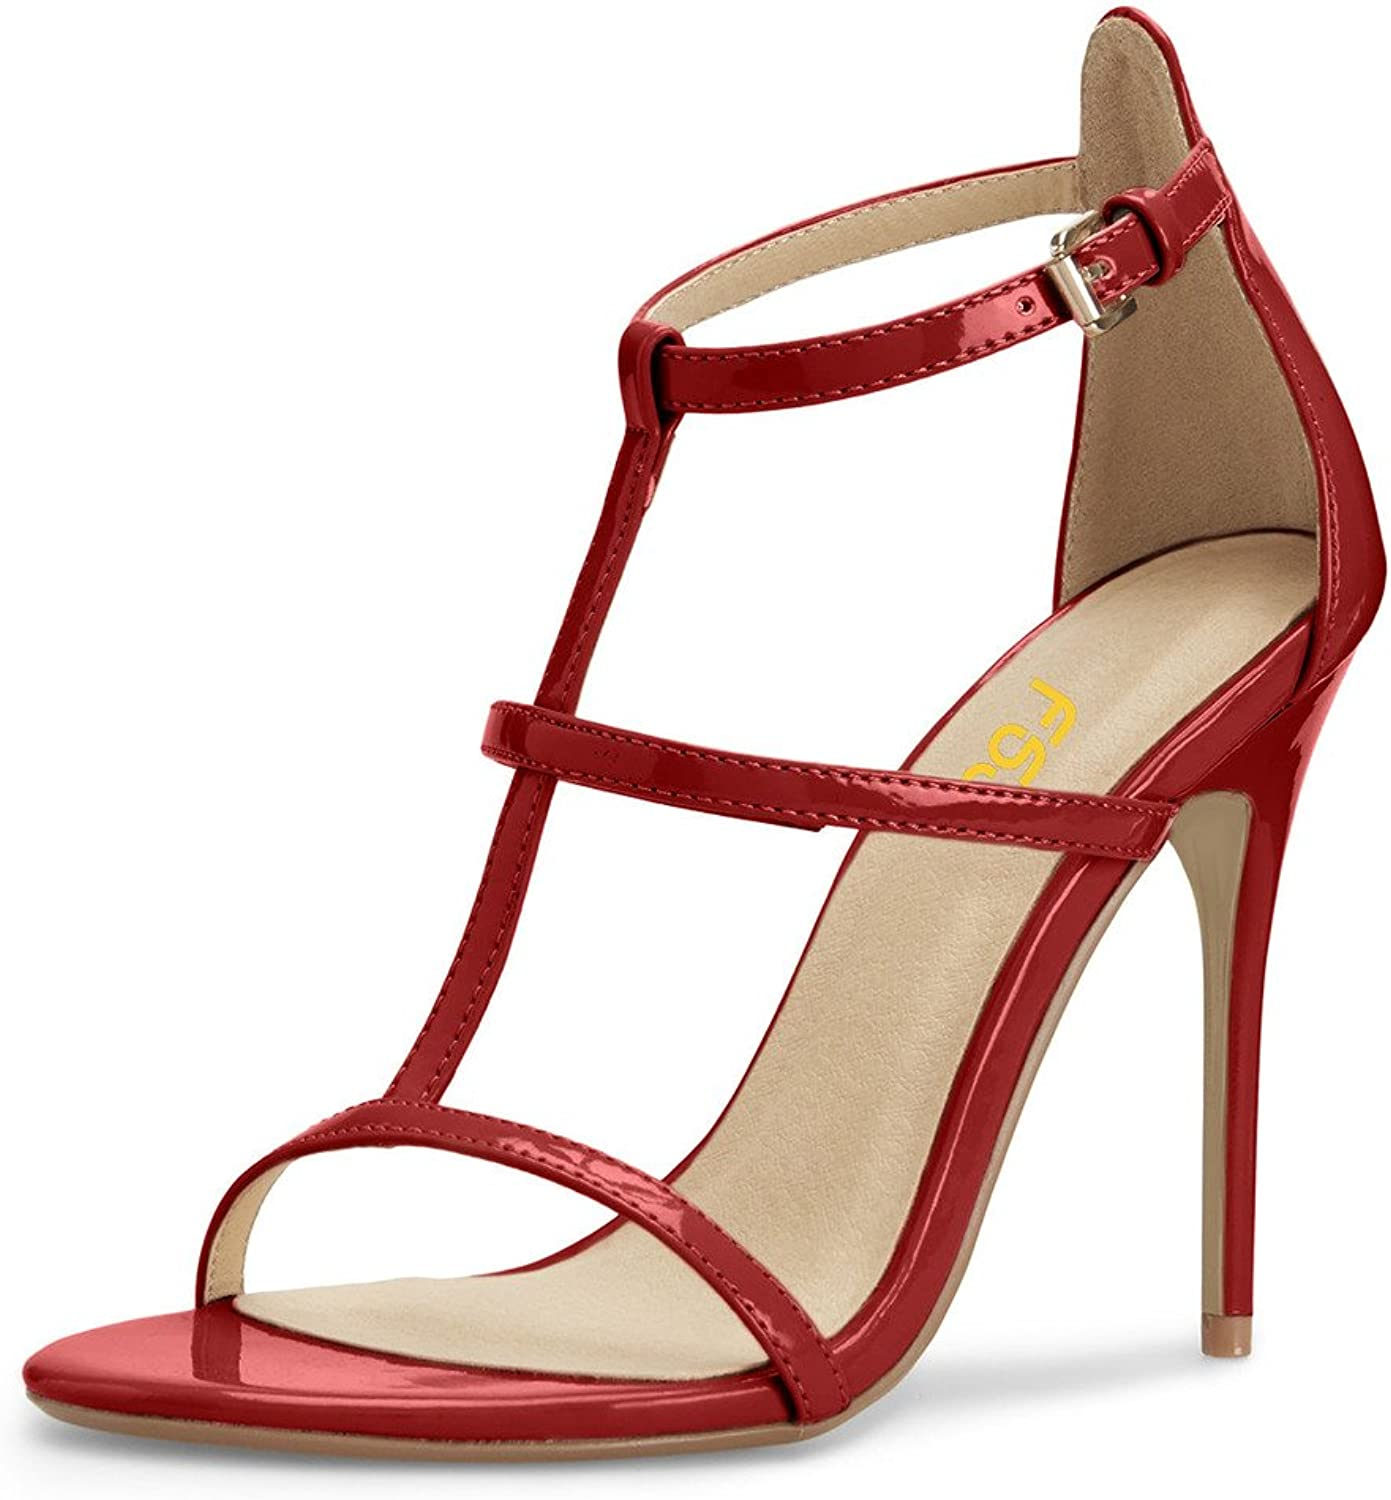 FSJ Fashion Sandals for Women Ankle Straps Open Toe Stiletto Heels Hollow Out shoes Size 4-15 US